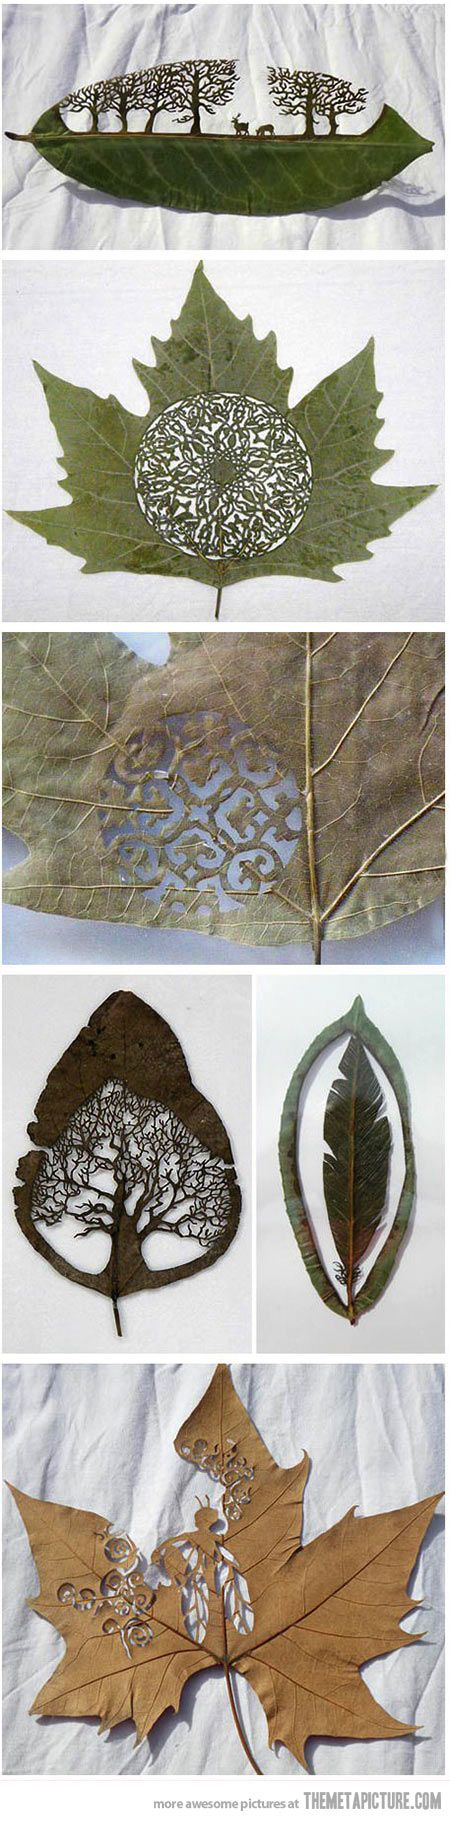 Art in a leaf…